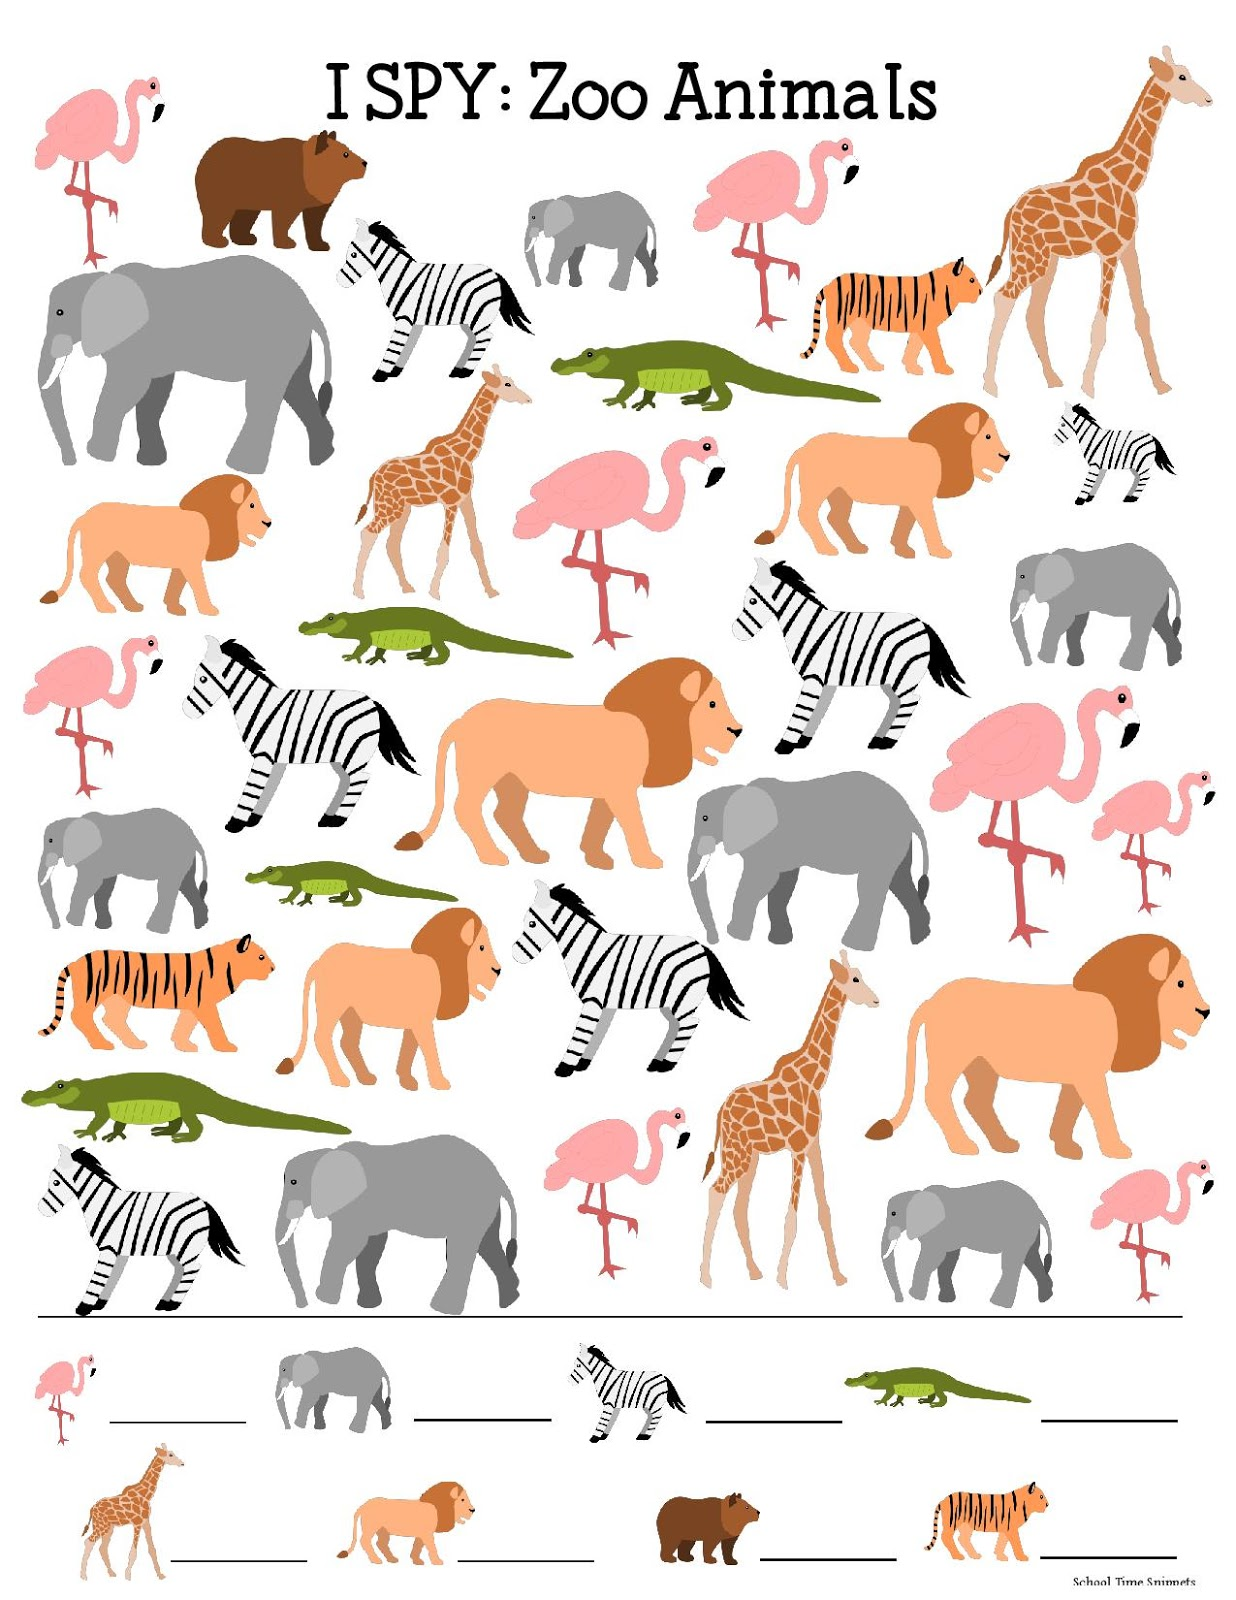 Zoo Animals I SPY Printable for Kids | School Time Snippets